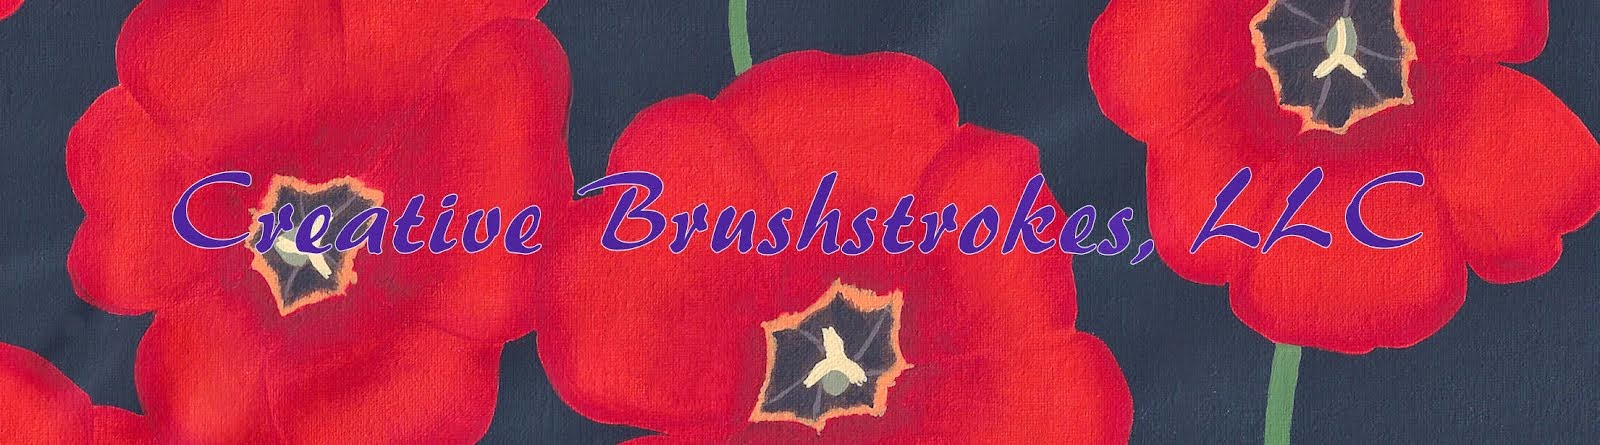 Creative Brushstrokes, LLC